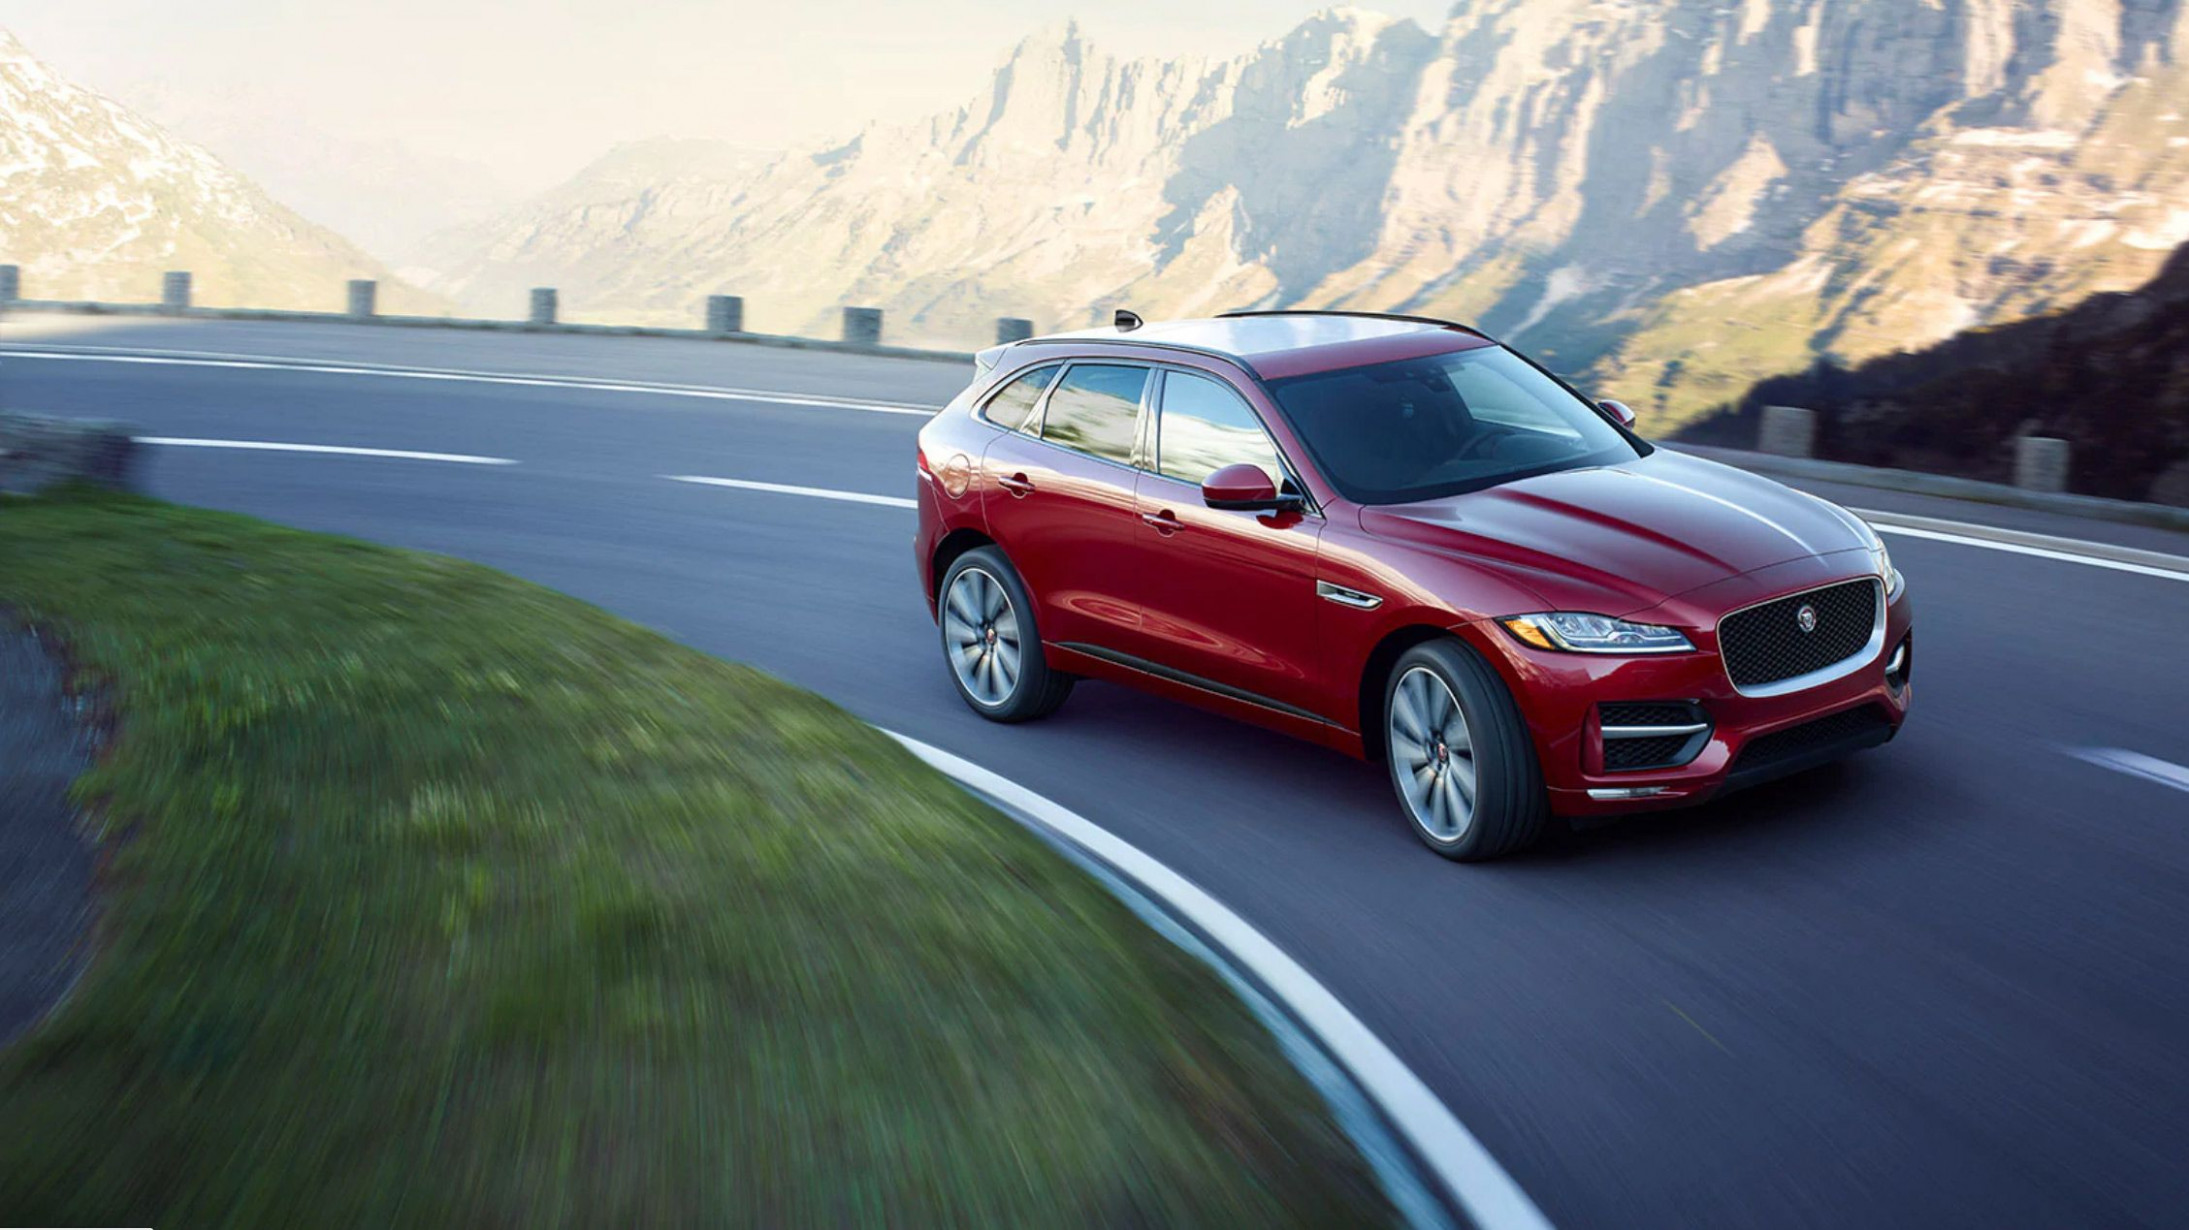 11 Jaguar F-Pace Review, Pricing, and Specs